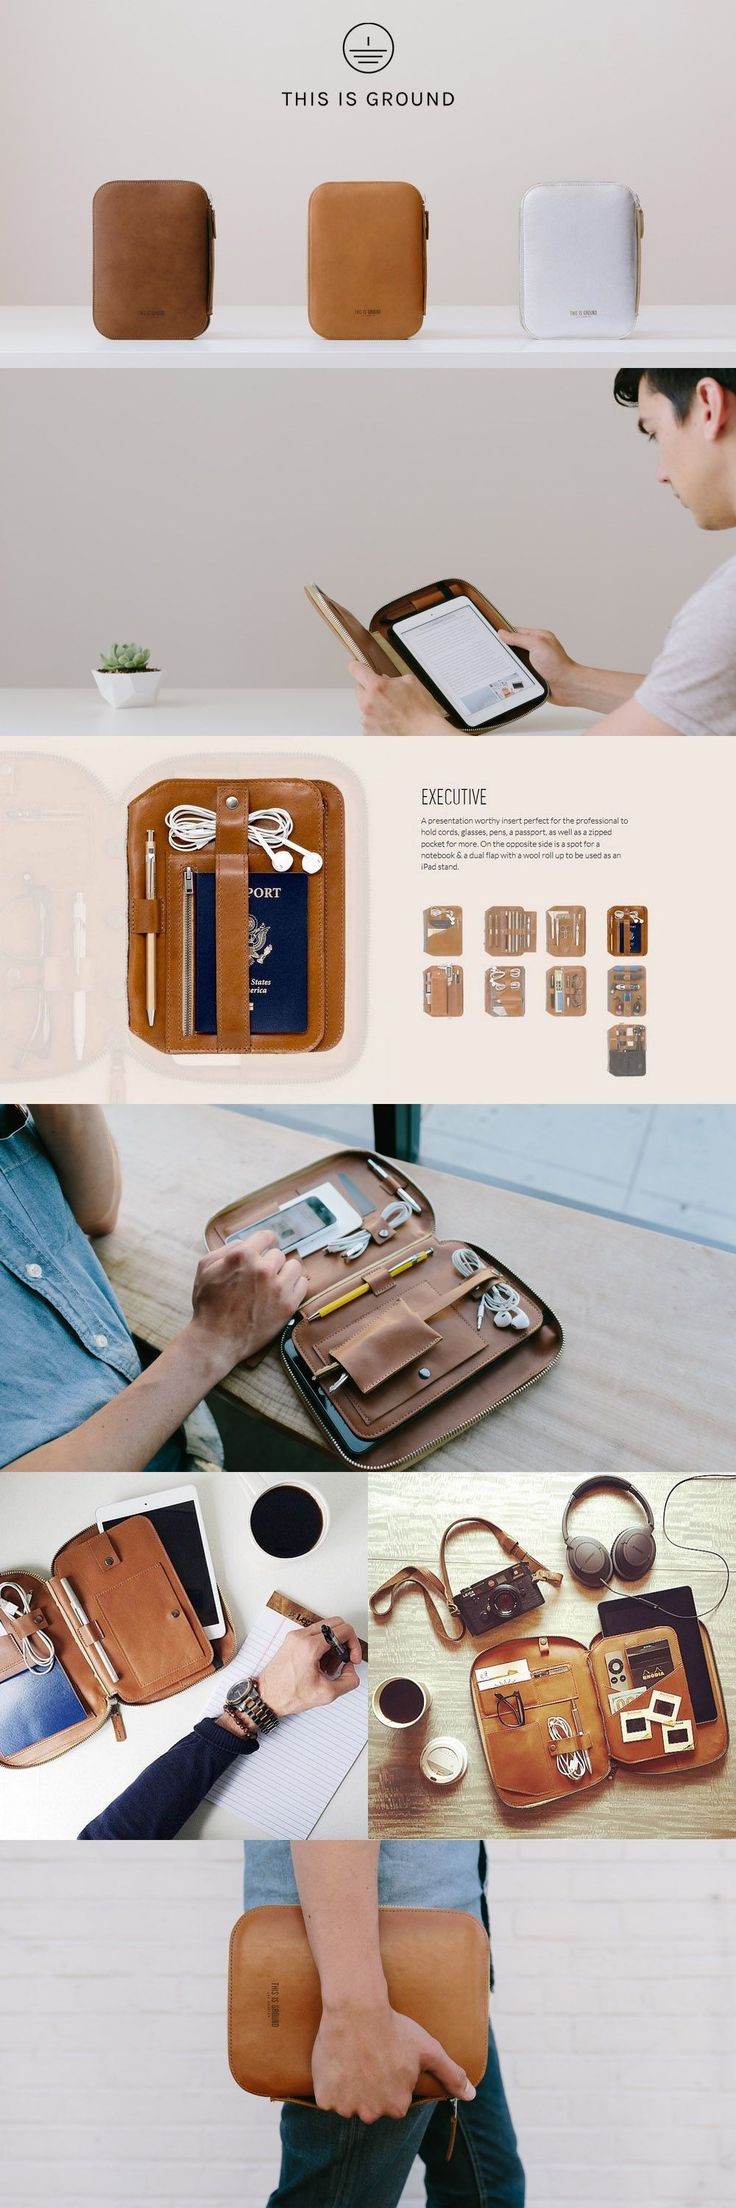 【THIS IS GROUND】Mod Tablet 2-Mini-Executive-Toffee